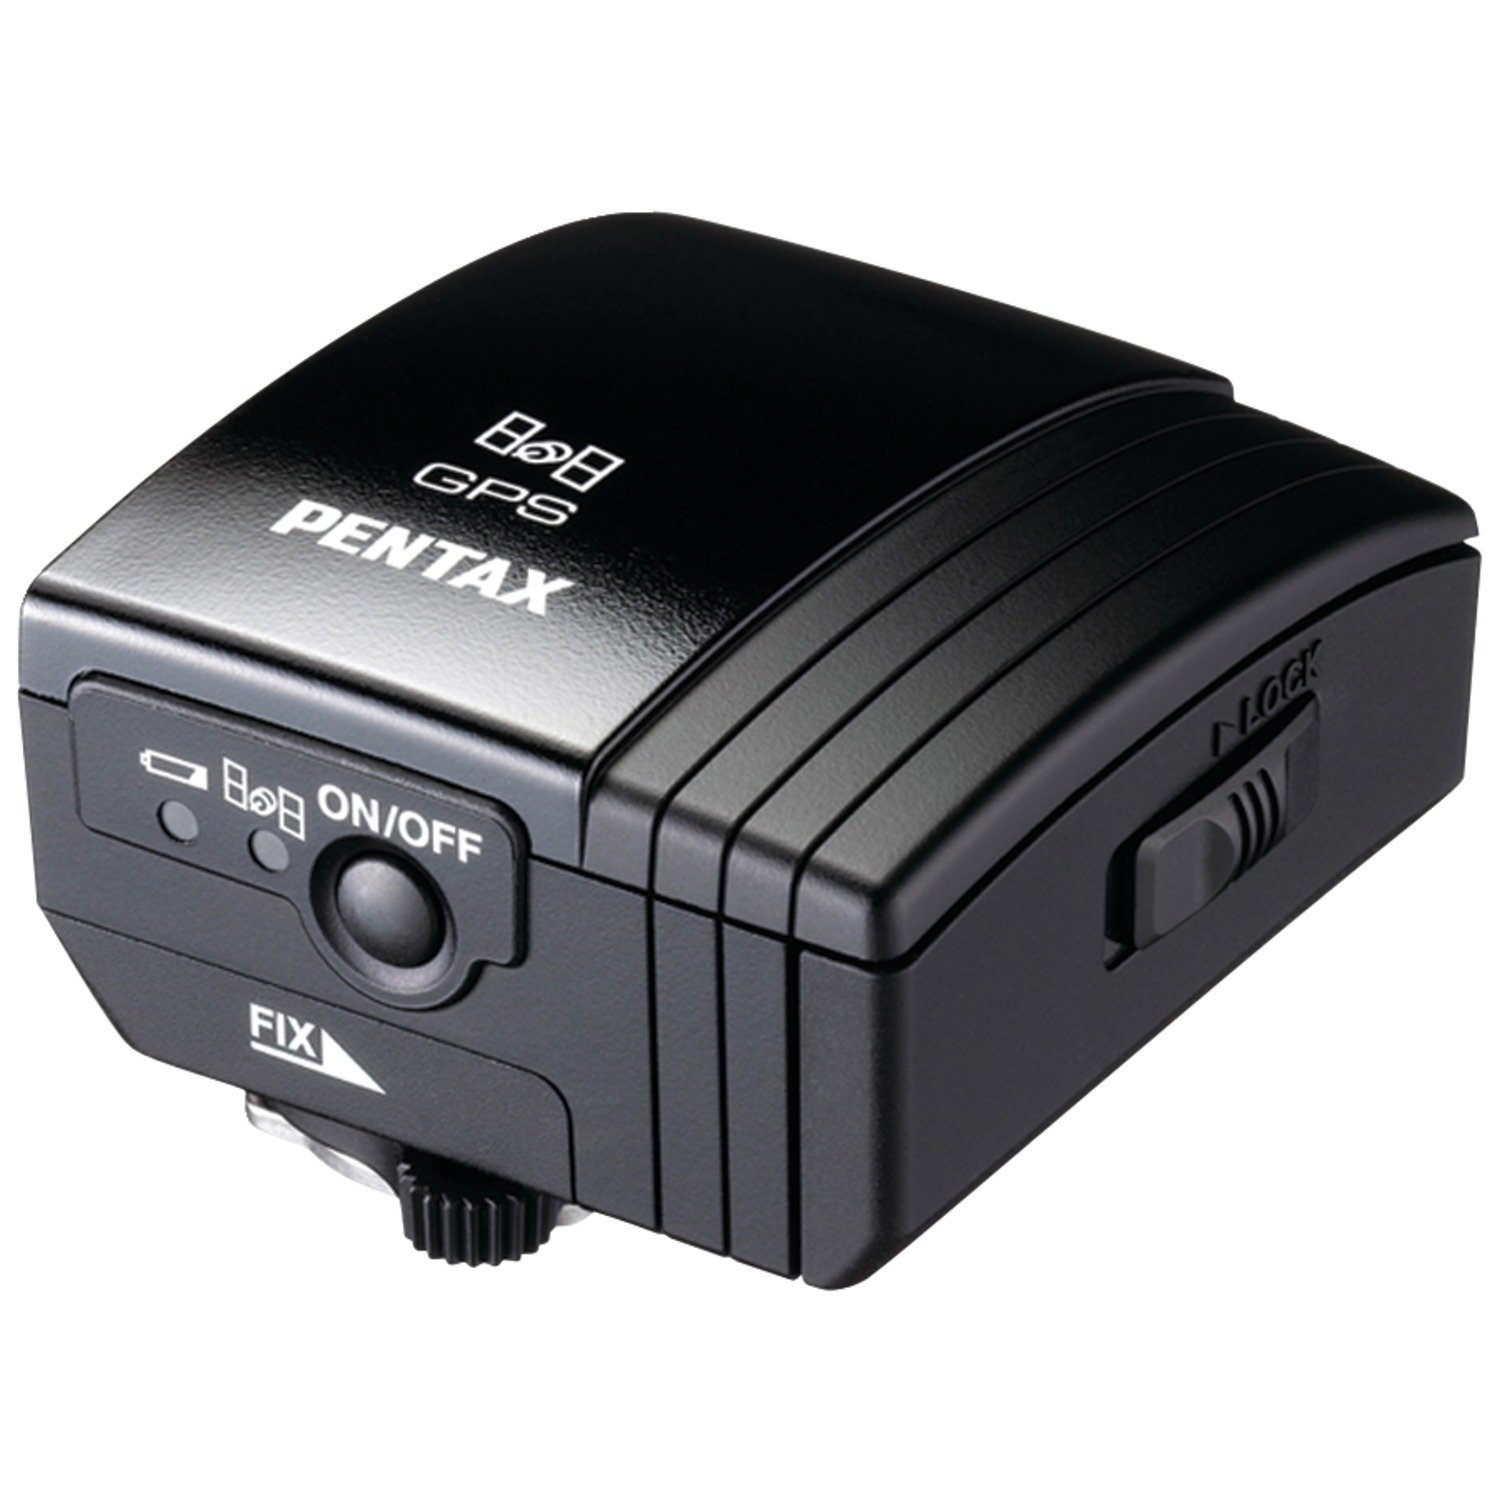 Pentax GPS Unit O-GPS1 Hotshoe Mounted Accessory GPS Unit for Pentax K-5, K-r, 645D by Pentax